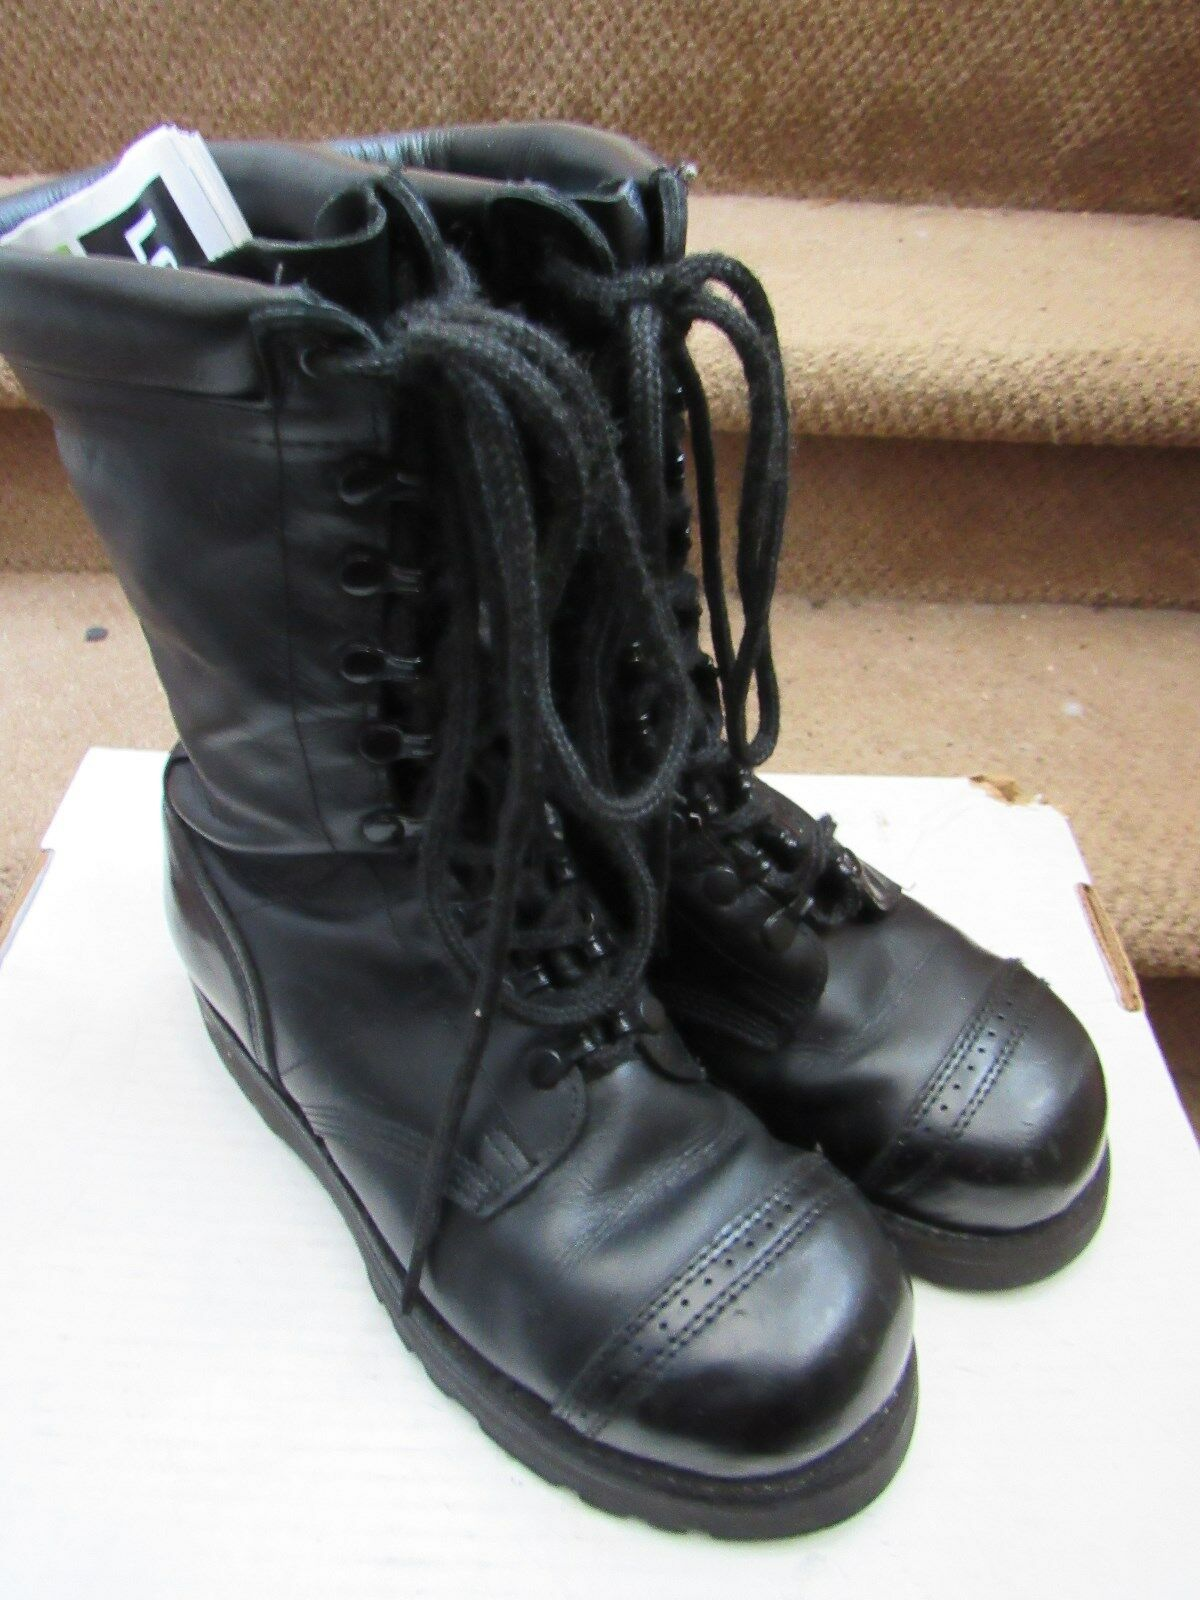 Corcoran black speedlace Combat Boots Men's sz 7 D Full Force US Army steel toe